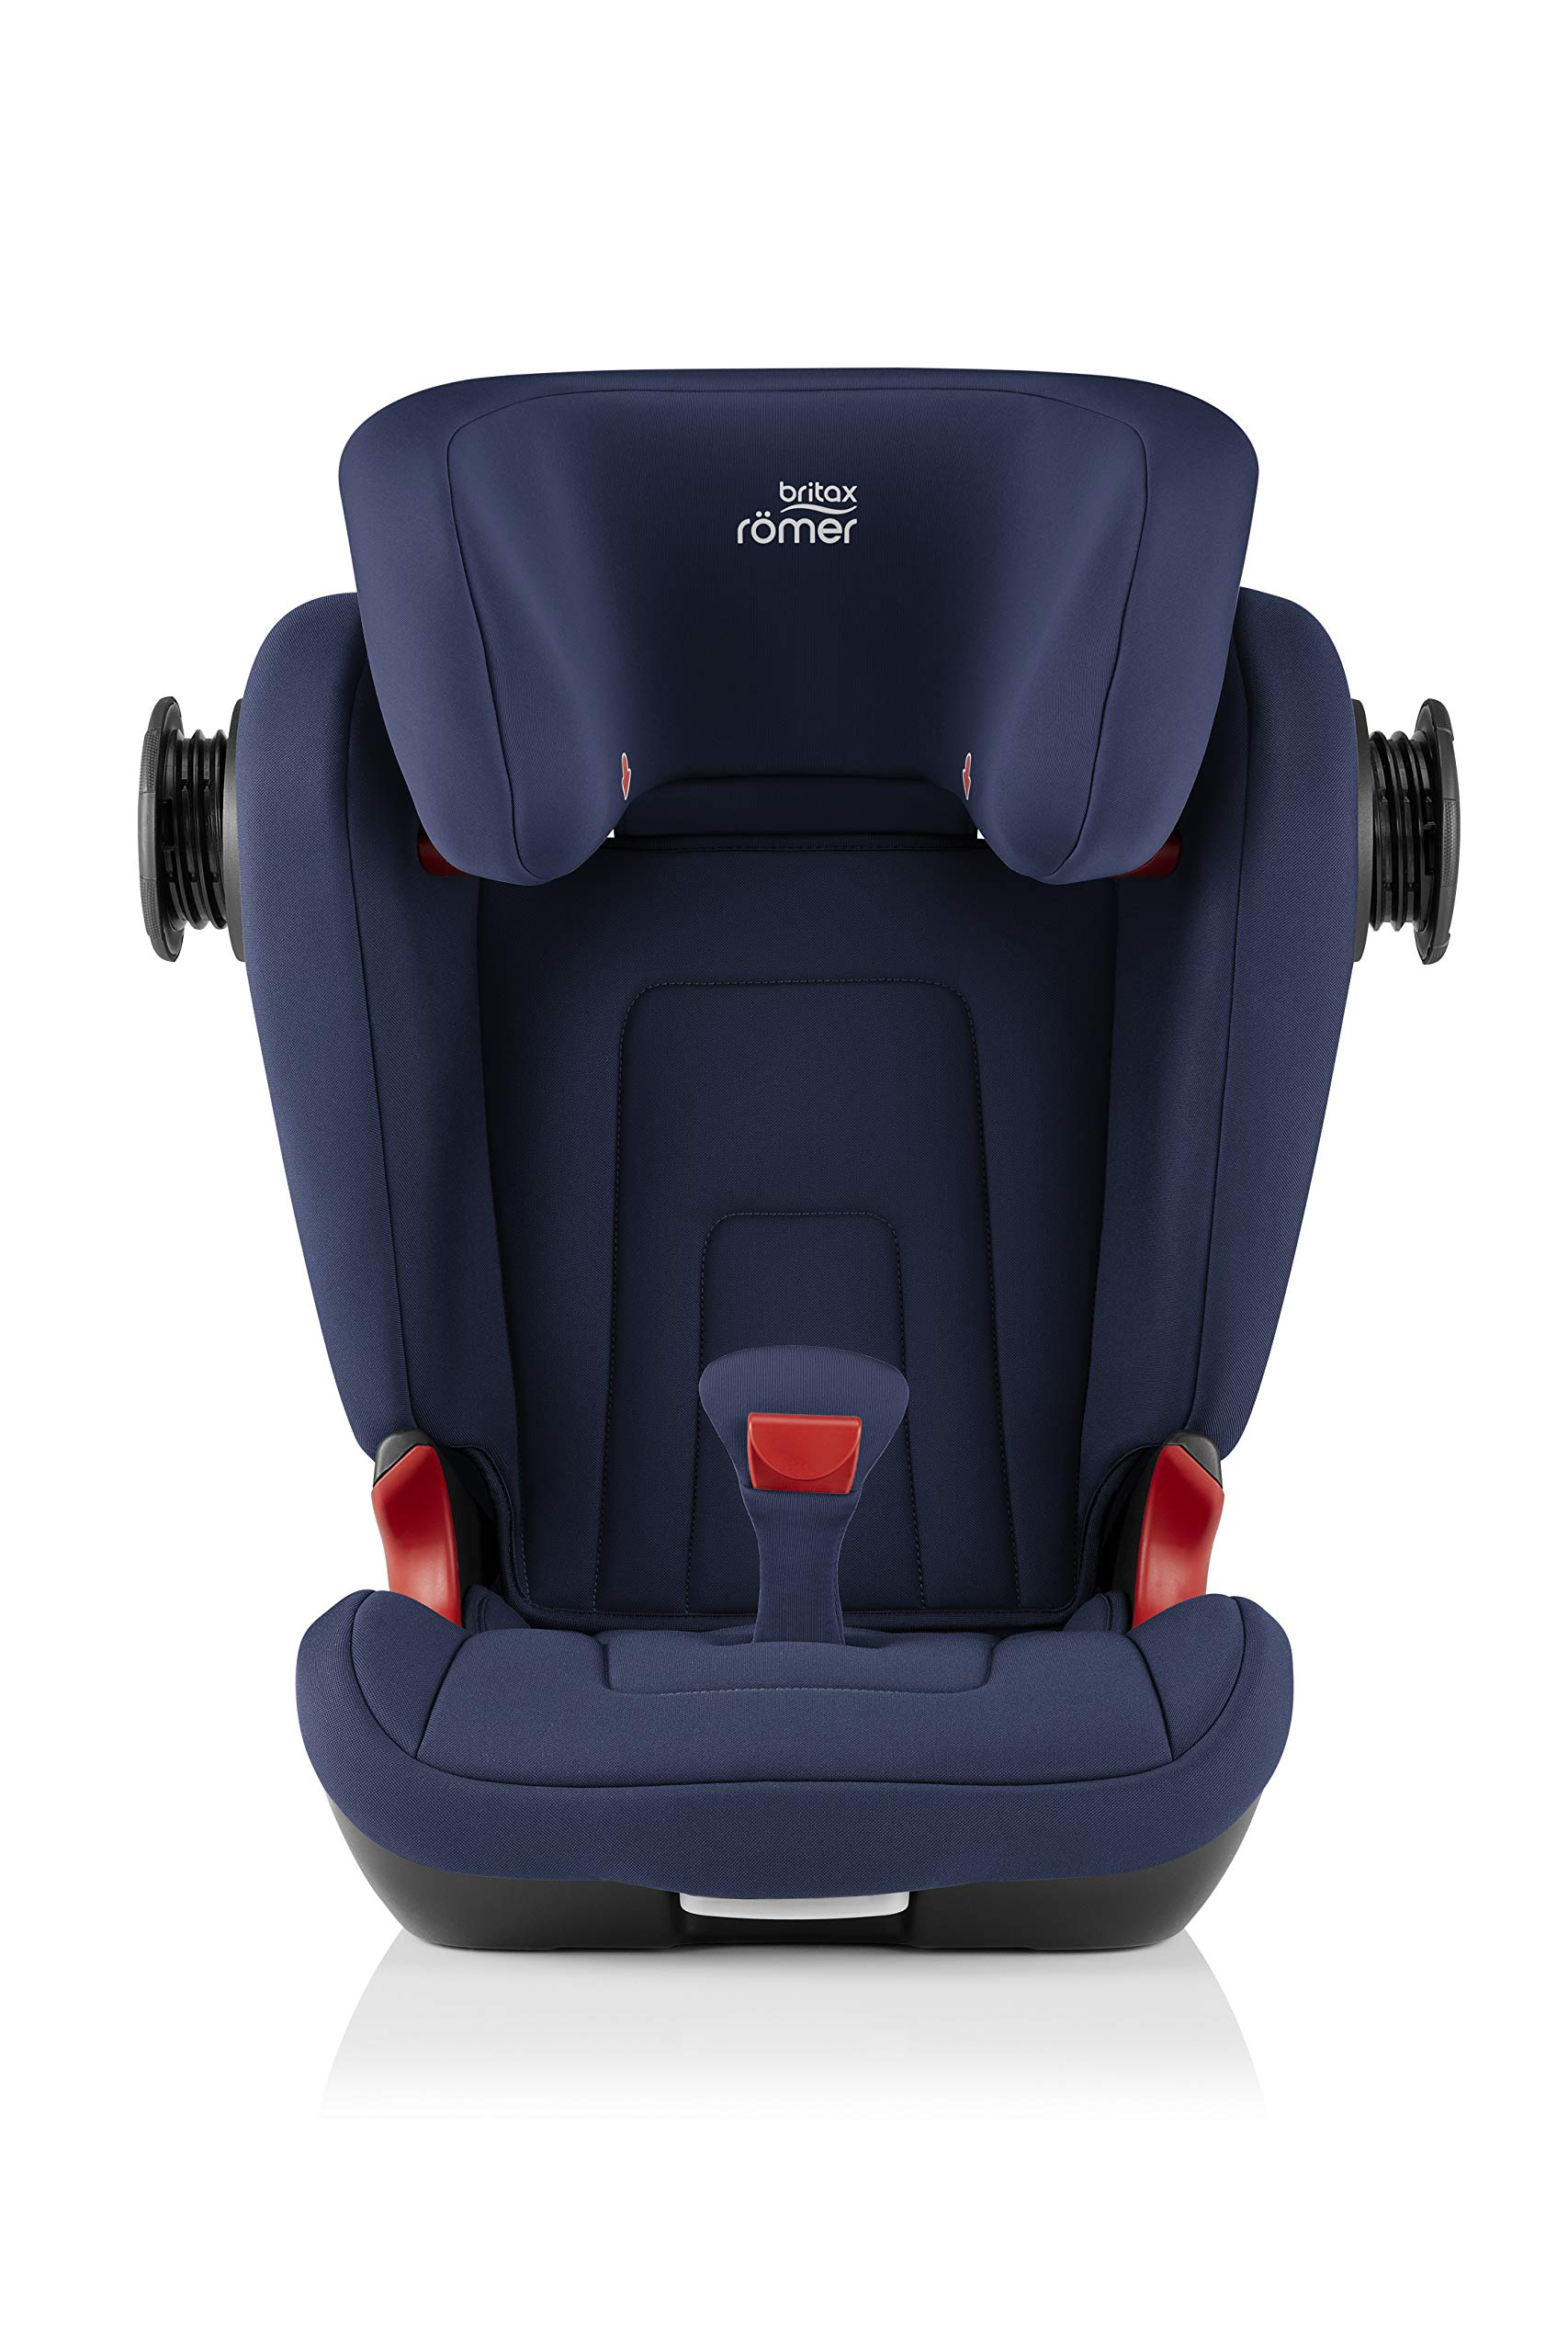 Britax Römer KIDFIX² S Group 2-3 (15-36kg) Car Seat - Moonlight Blue  Advanced side impact protection - sict offers superior protection to your child in the event of a side collision. reducing impact forces by minimising the distance between the car and the car seat. Secure guard - helps to protect your child's delicate abdominal area by adding an extra - a 4th - contact point to the 3-point seat belt. High back booster - protects your child in 3 ways: provides head to hip protection; belt guides provide correct positioning of the seat belt and the padded headrest provides safety and comfort. 6